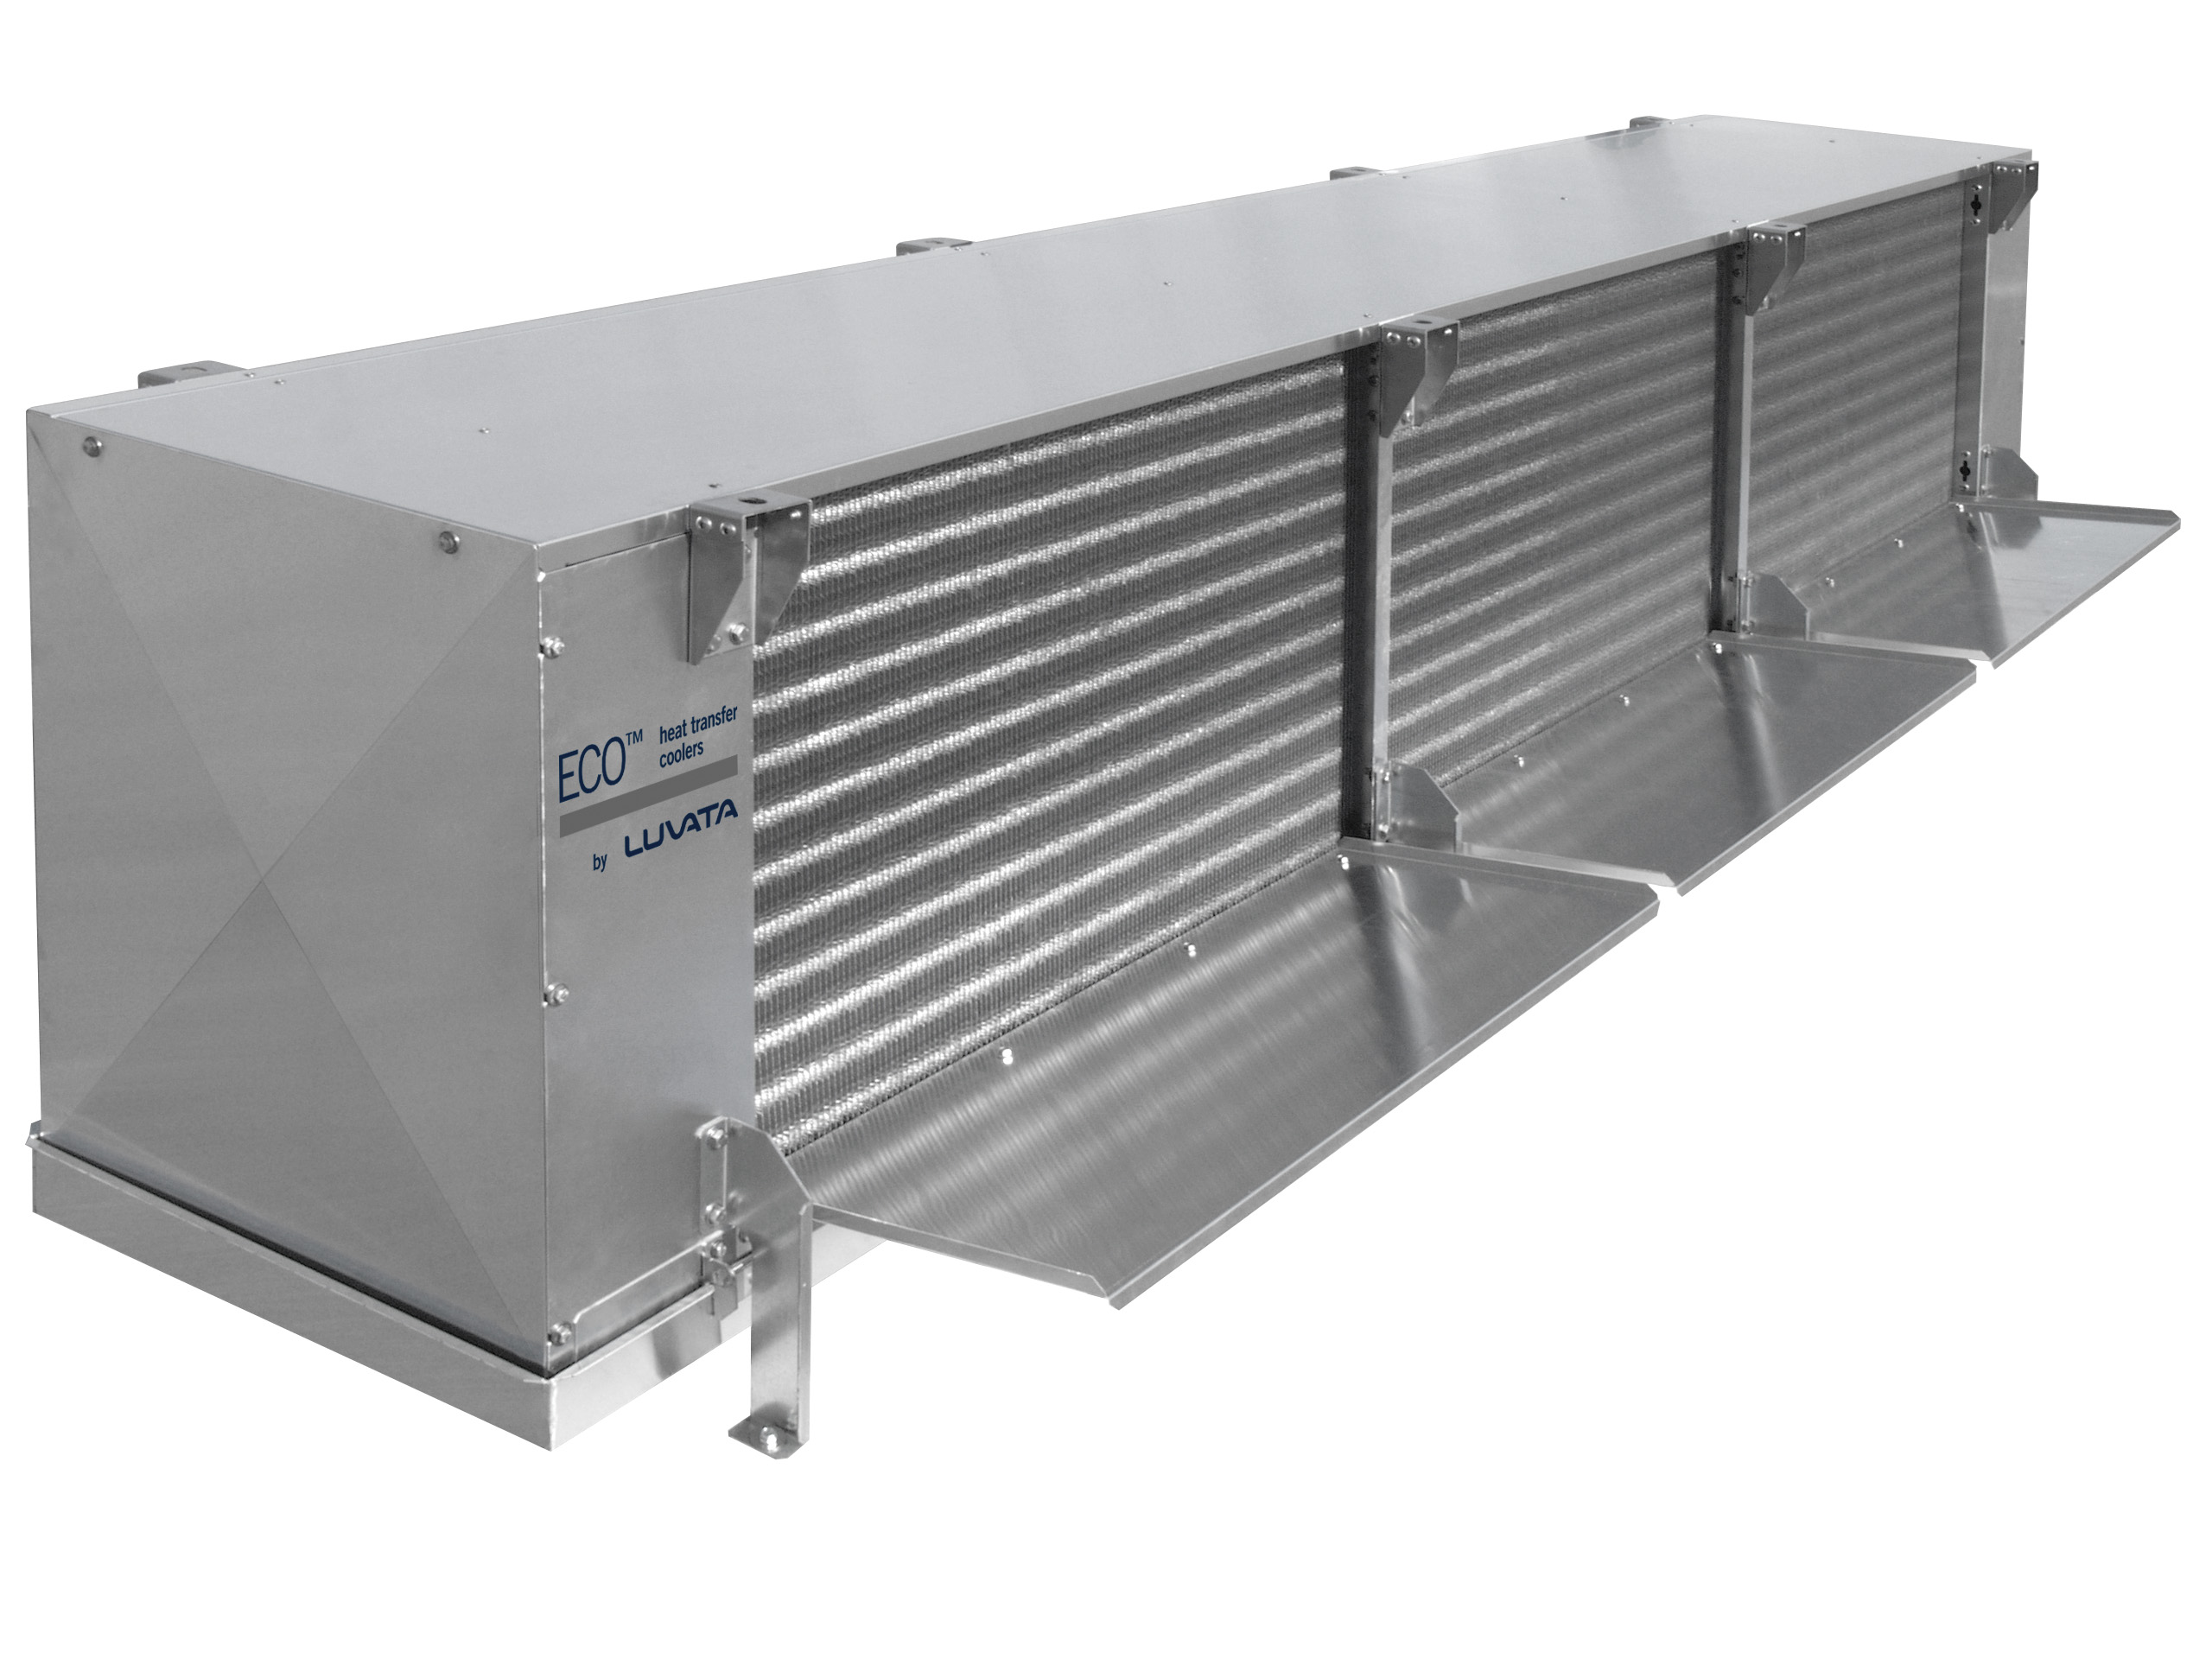 Brian Bazzett - FTE_Cubic unit coolers and brine coolers for fruits and vegetables preservation cold rooms